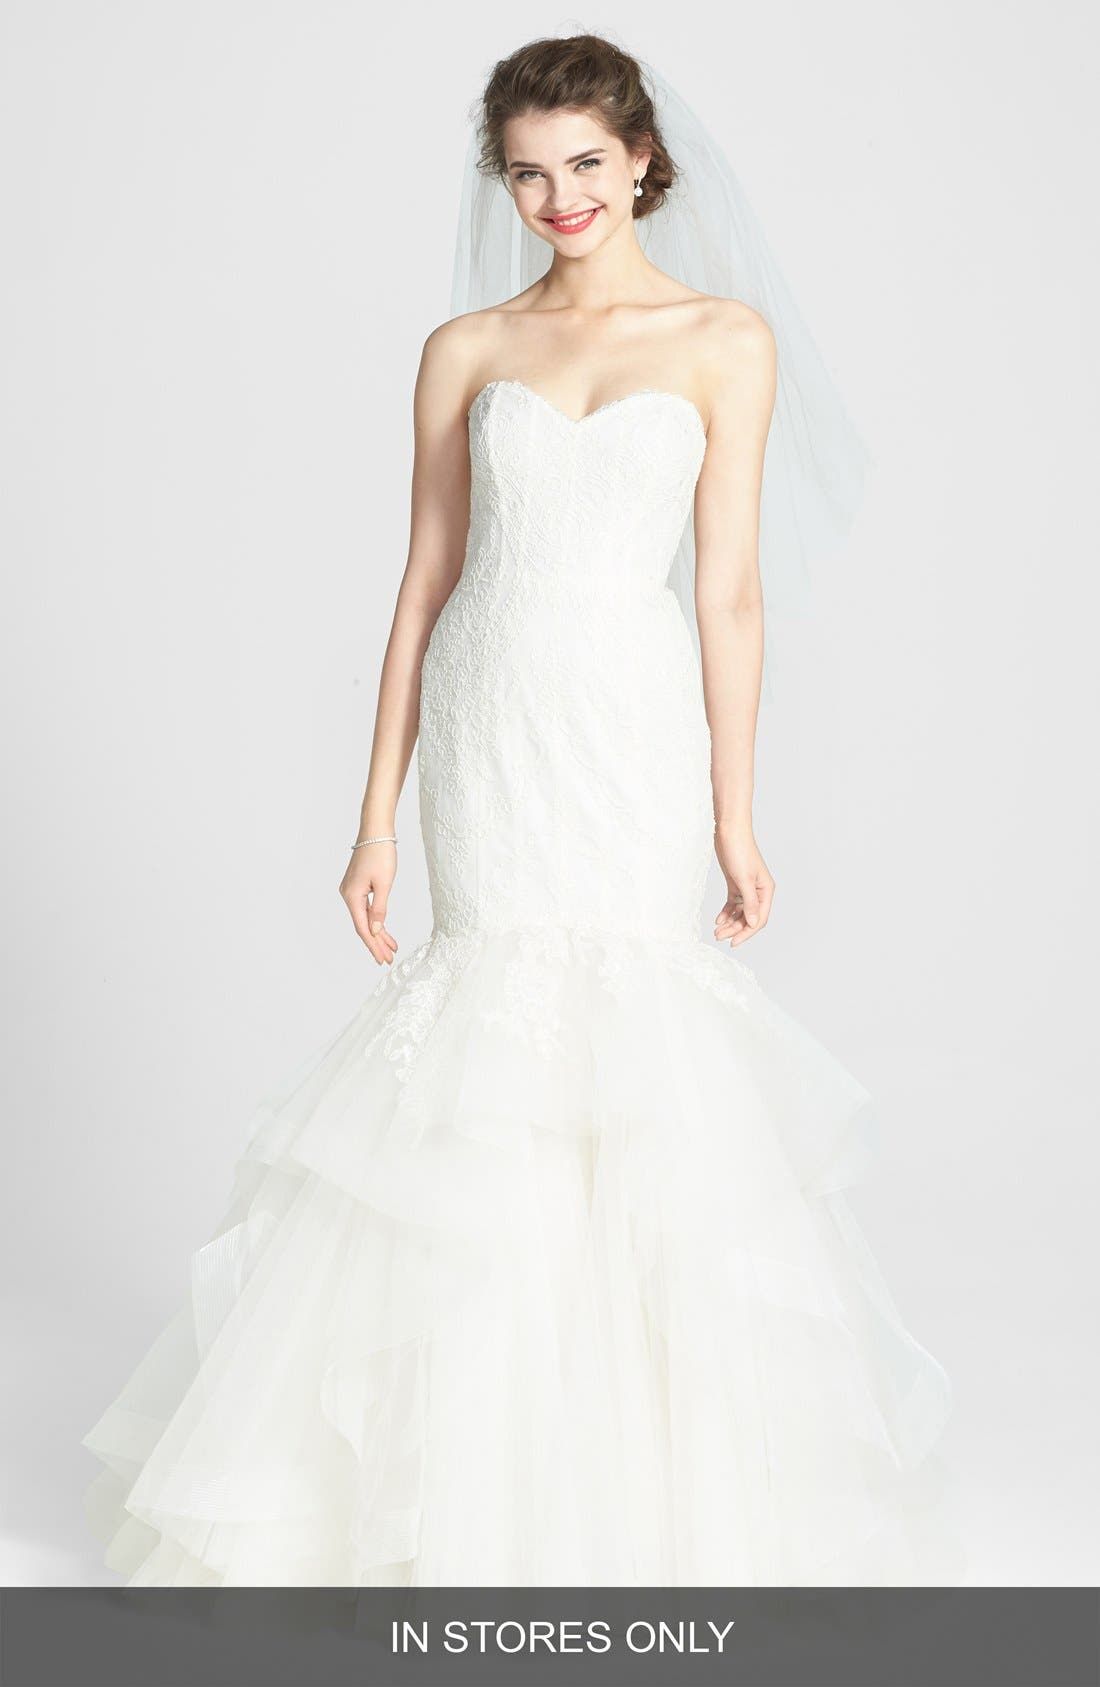 Amsale 'Carson' French Lace & Tulle Mermaid Wedding Dress (In Stores Only)